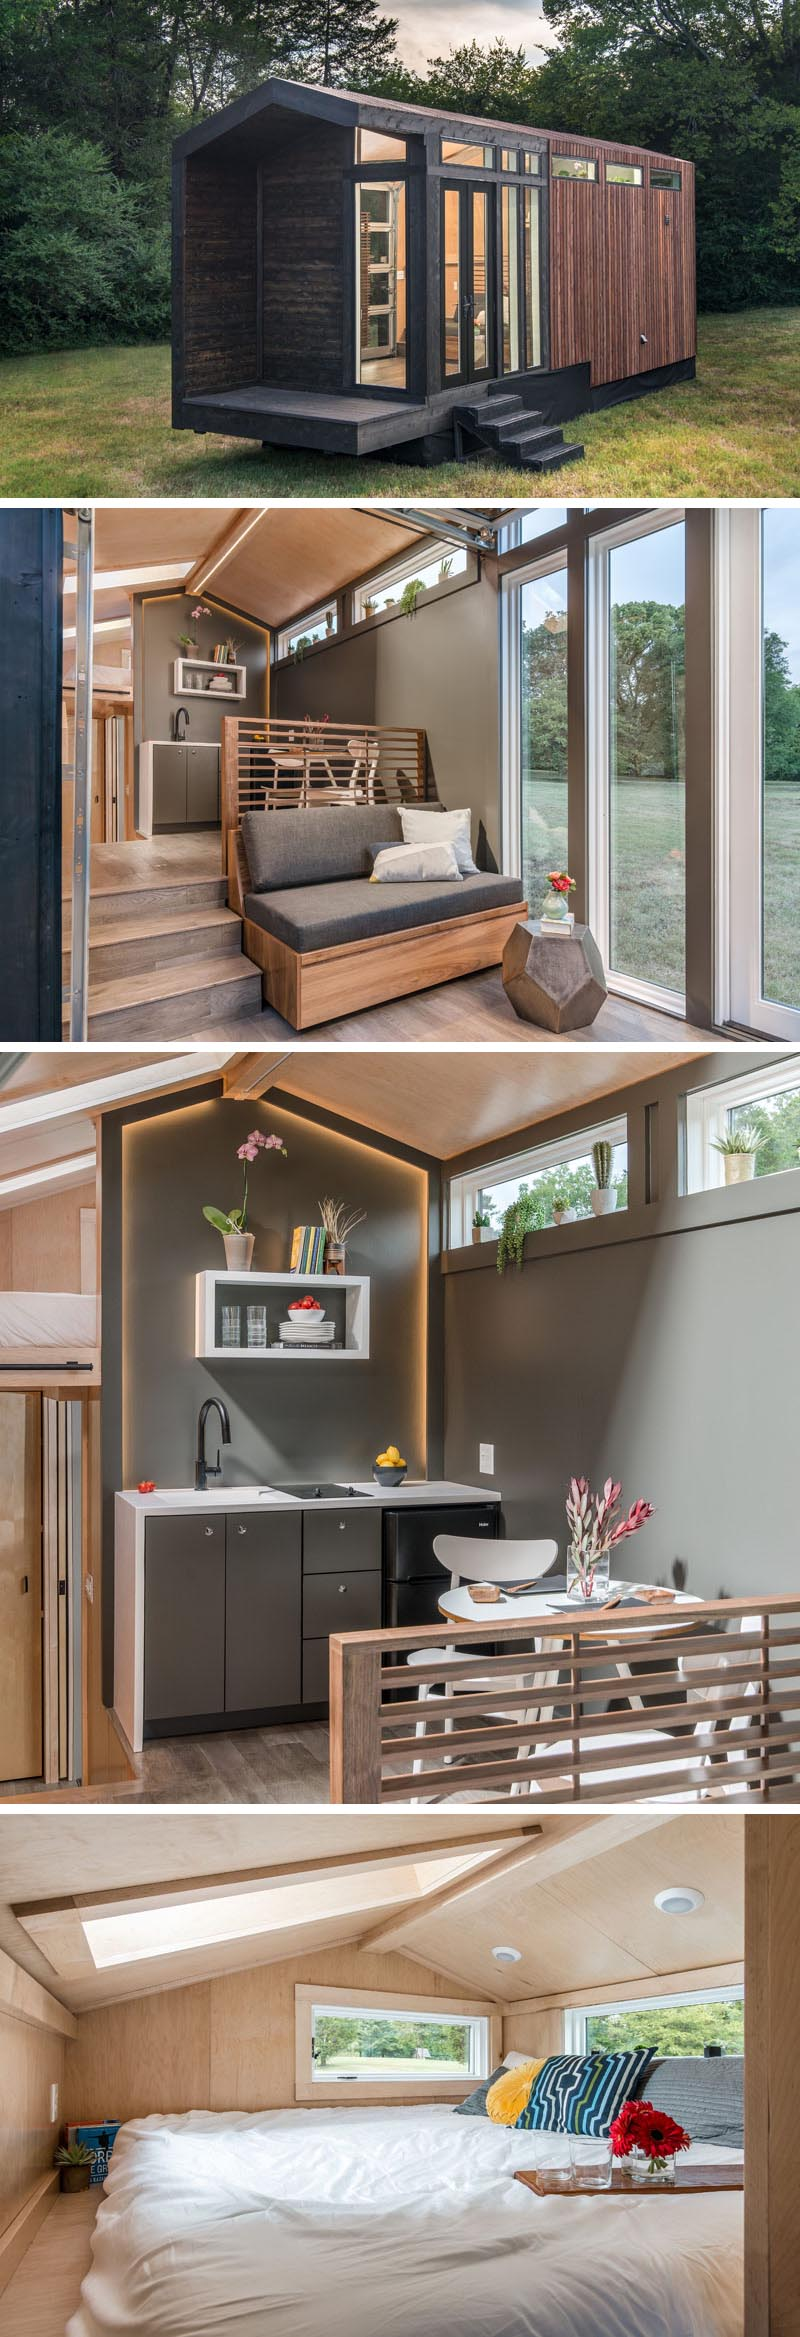 A tiny house with a contemporary gable farmhouse design, different interior levels, and two sleeping areas.